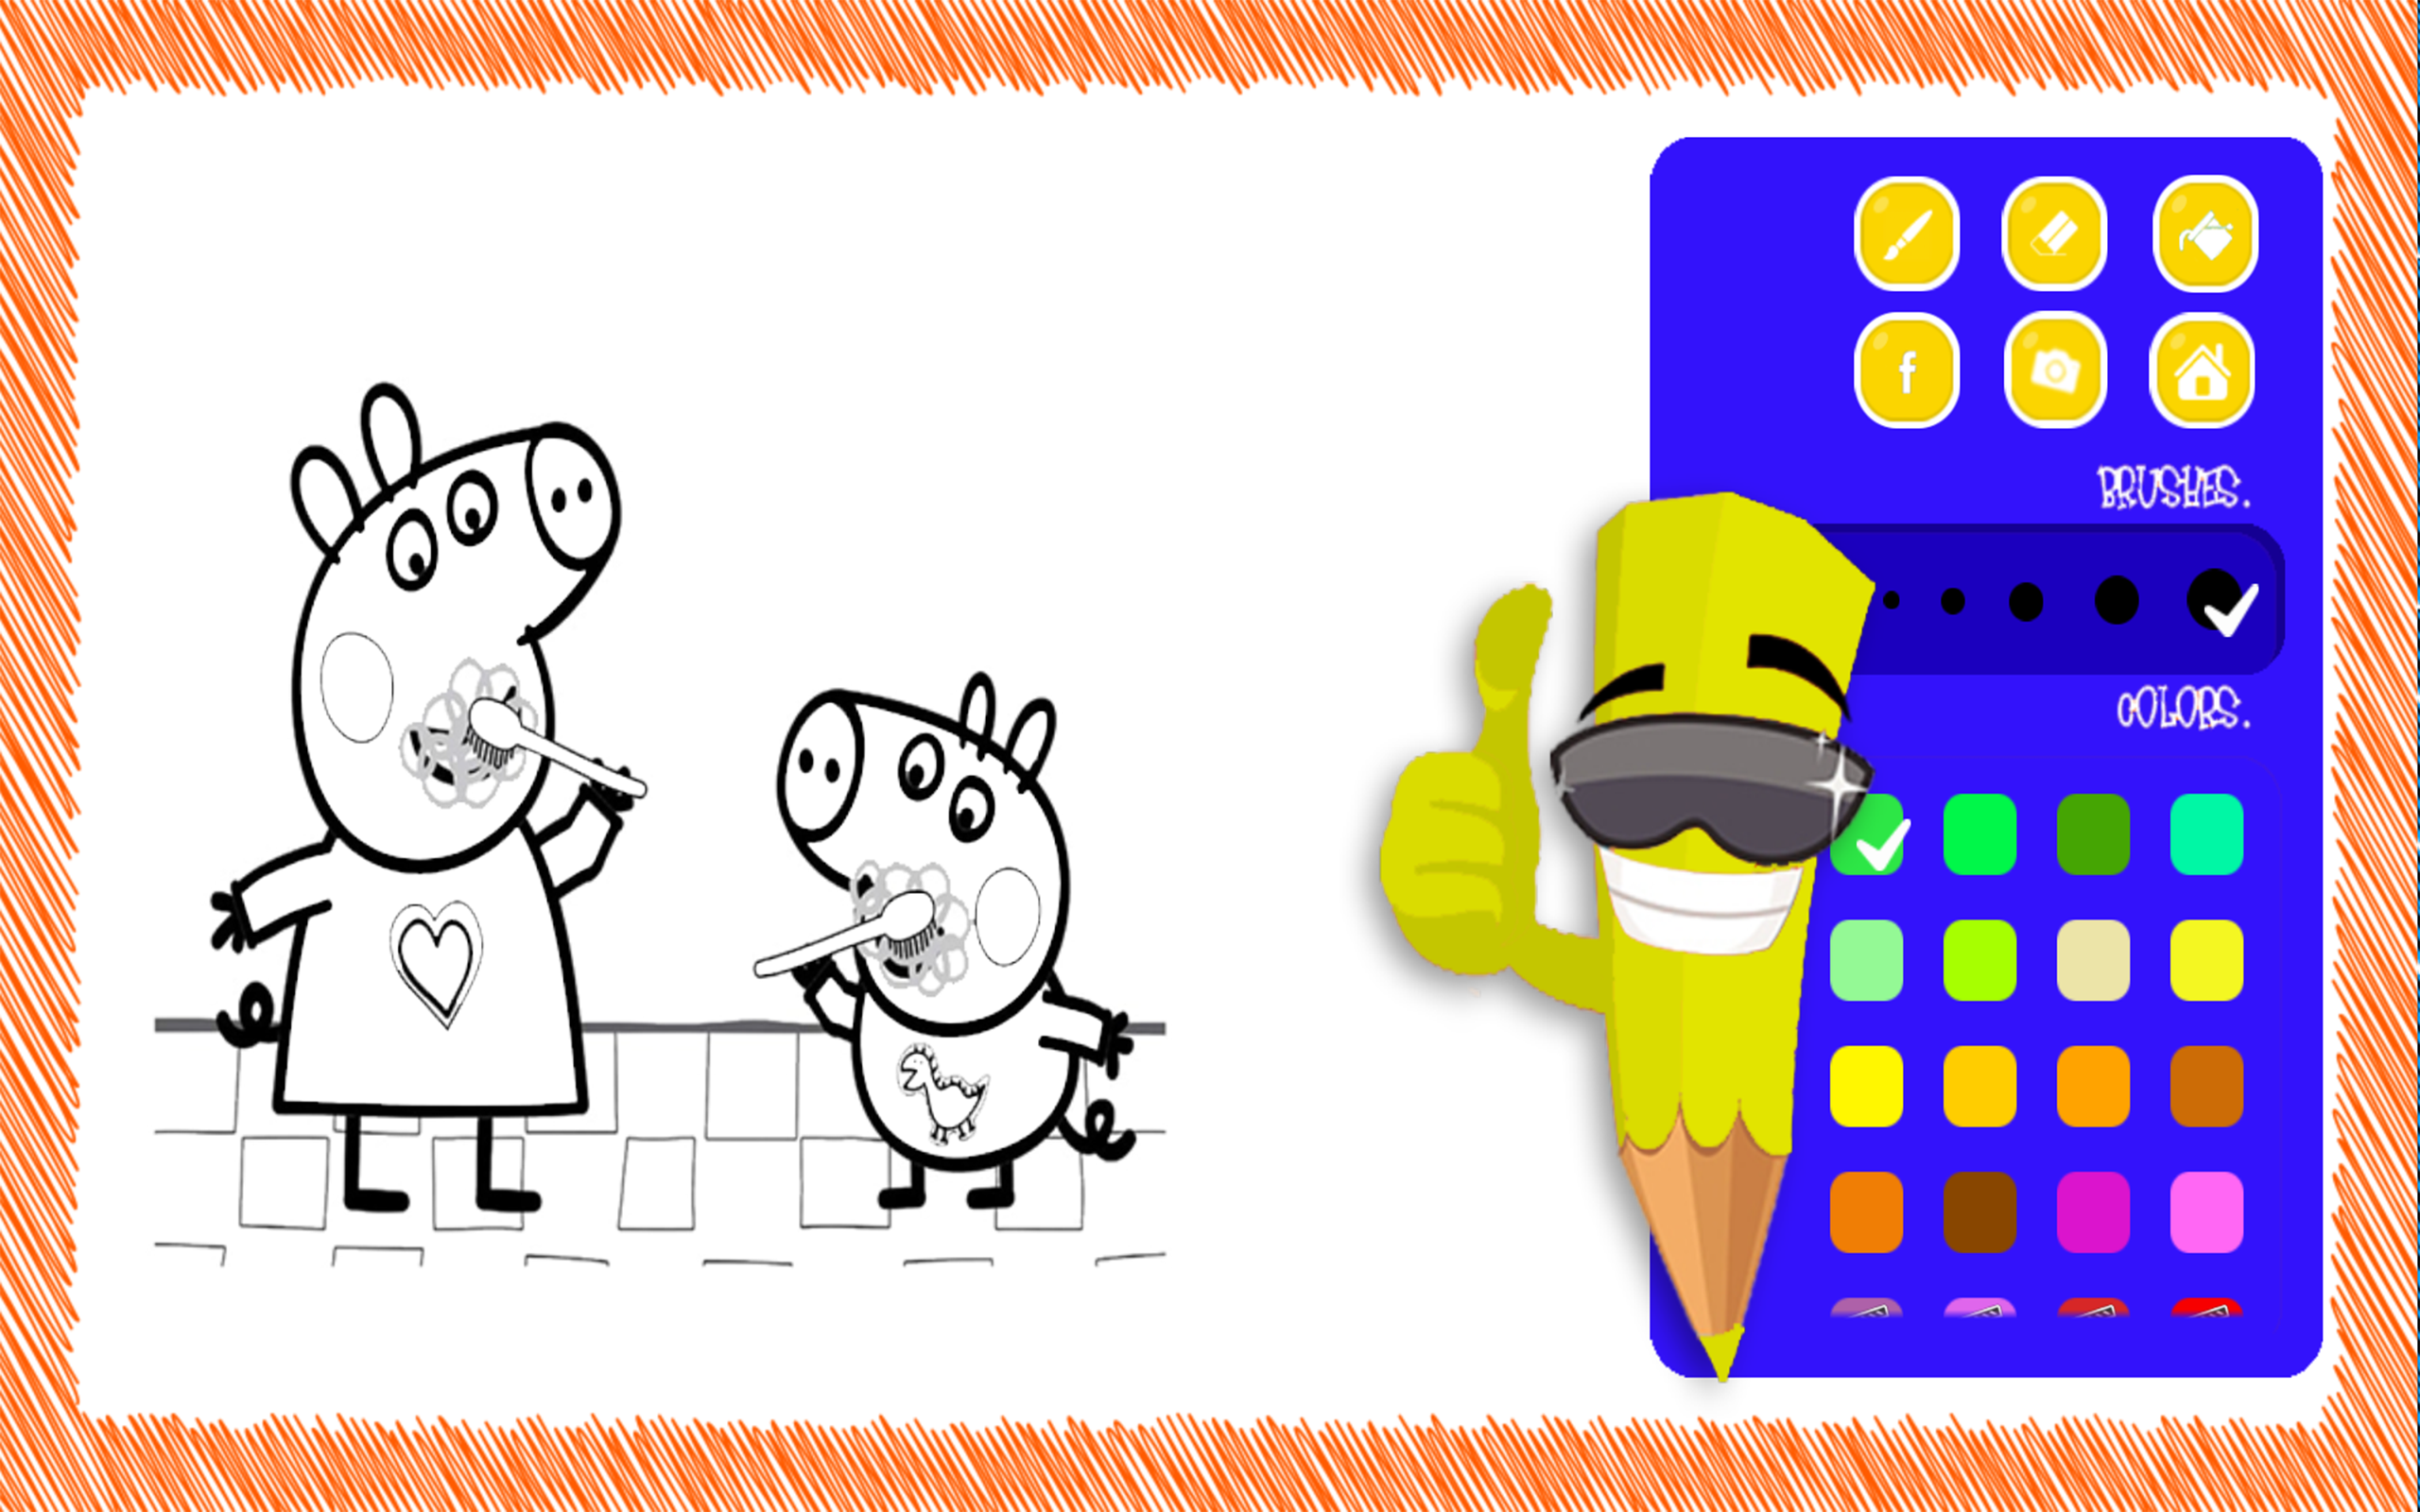 - Pink Pig Coloring Book Games For Kids: Amazon.co.uk: Appstore For